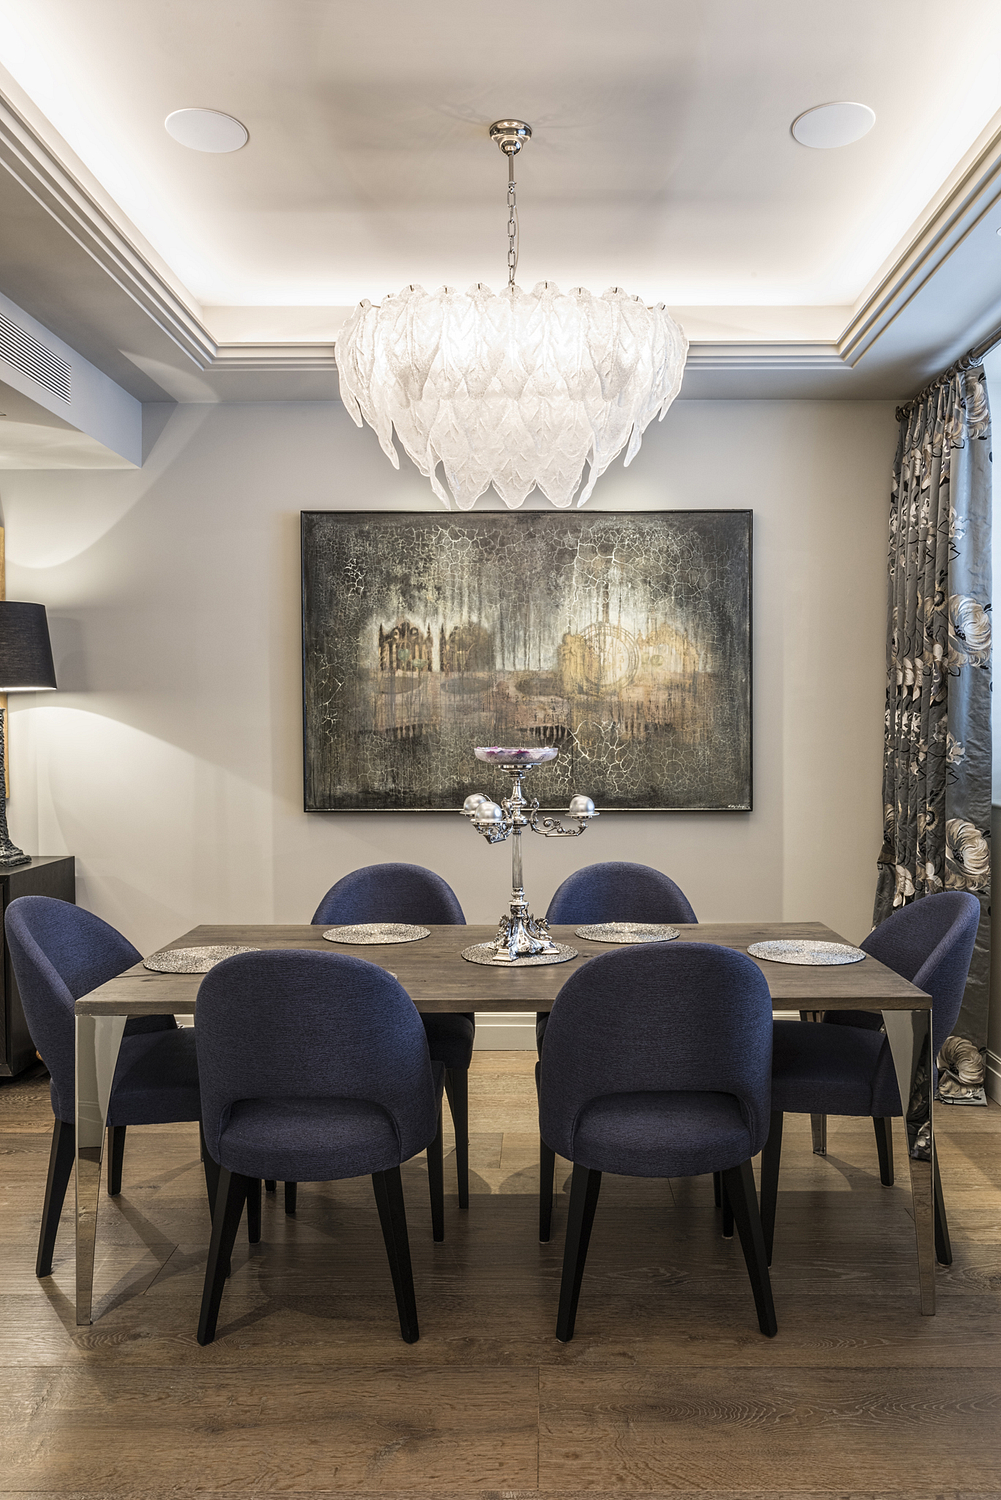 Dining room with chandelier, London mews house